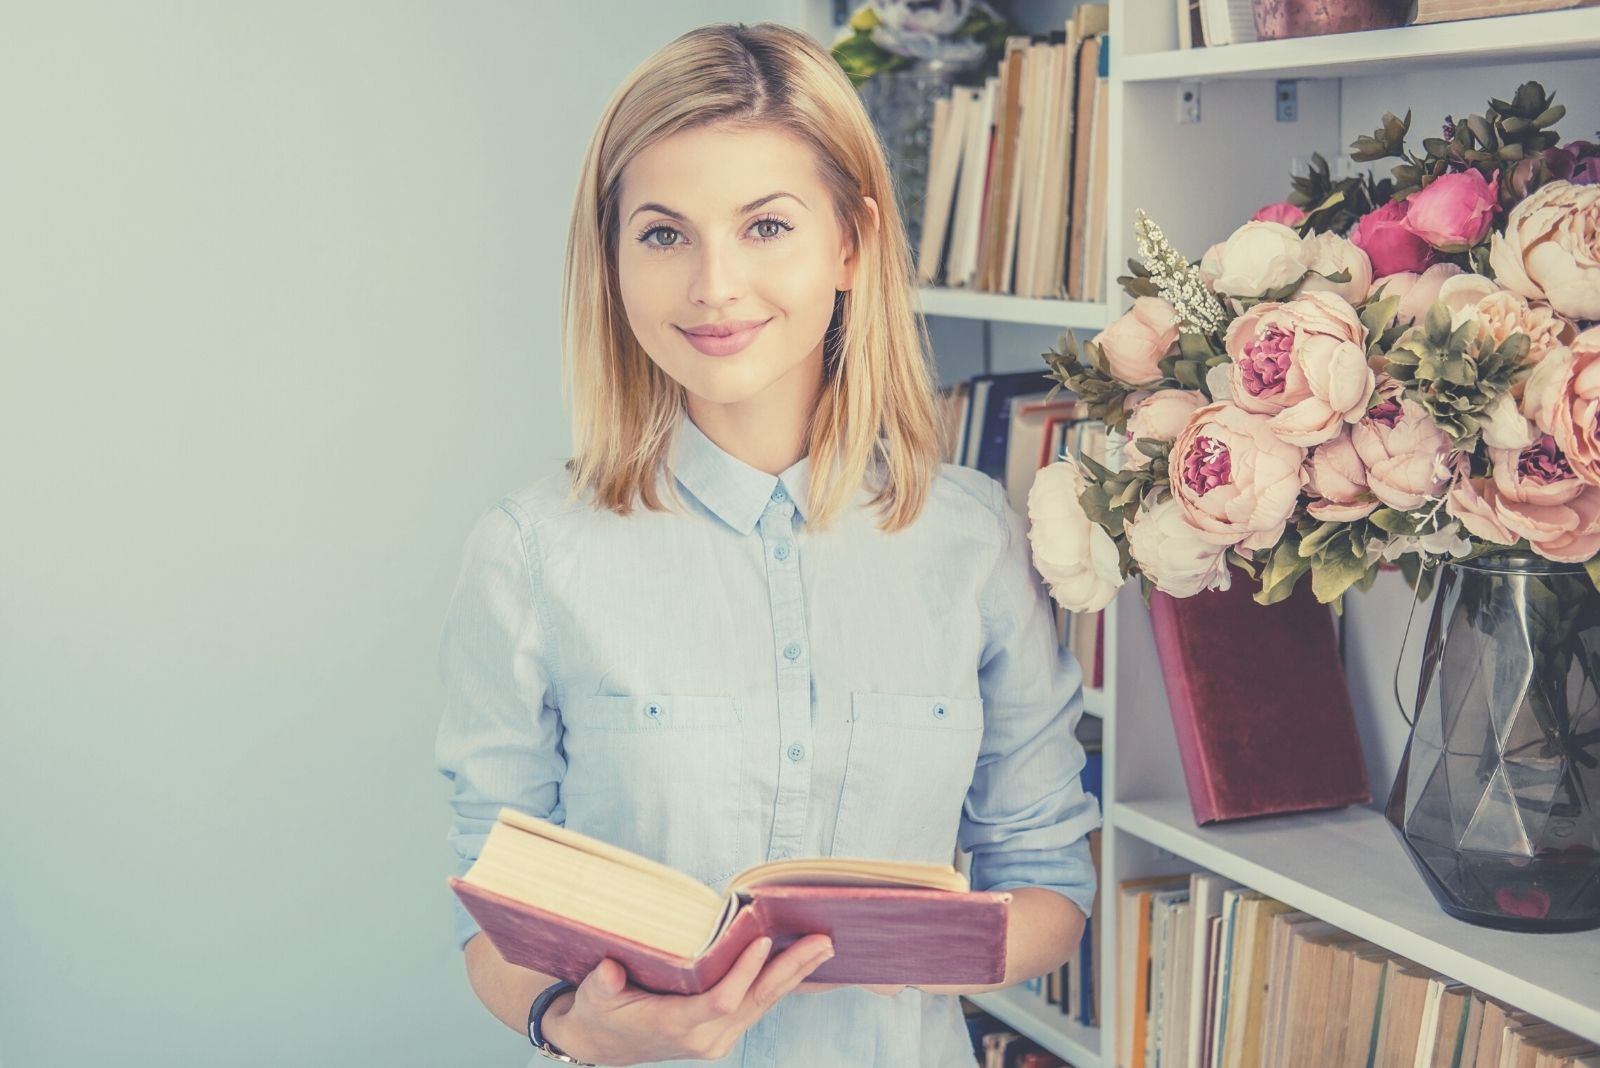 portrait of a positive woman holding a book and smiling and looking at the camera